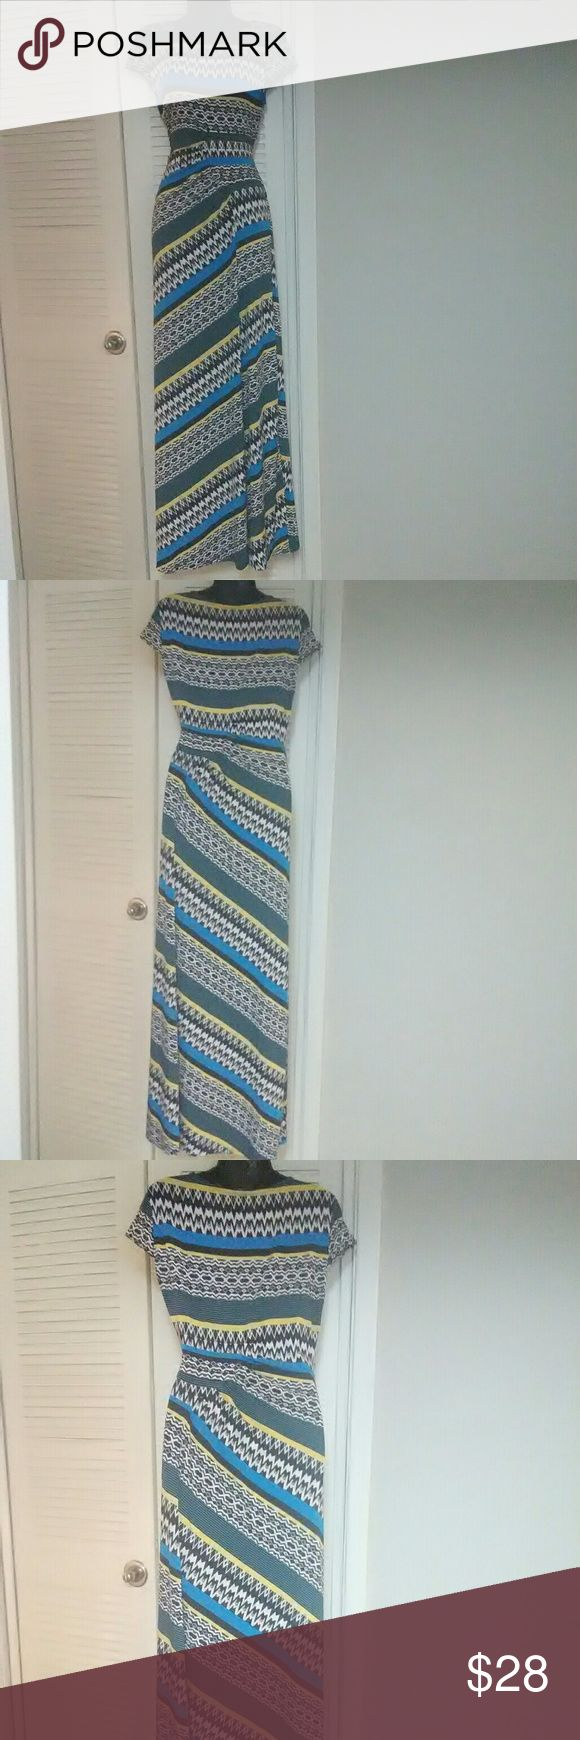 "ECI New York sz Medium blue multi color maxi dress Very beautiful dress in excellent used condition.  Bundle with other items for discount or make an offer!  18"" armpit to armpit 14.5 across waist 52"" length.  Slight ruching at the waist. ECI Dresses Maxi"